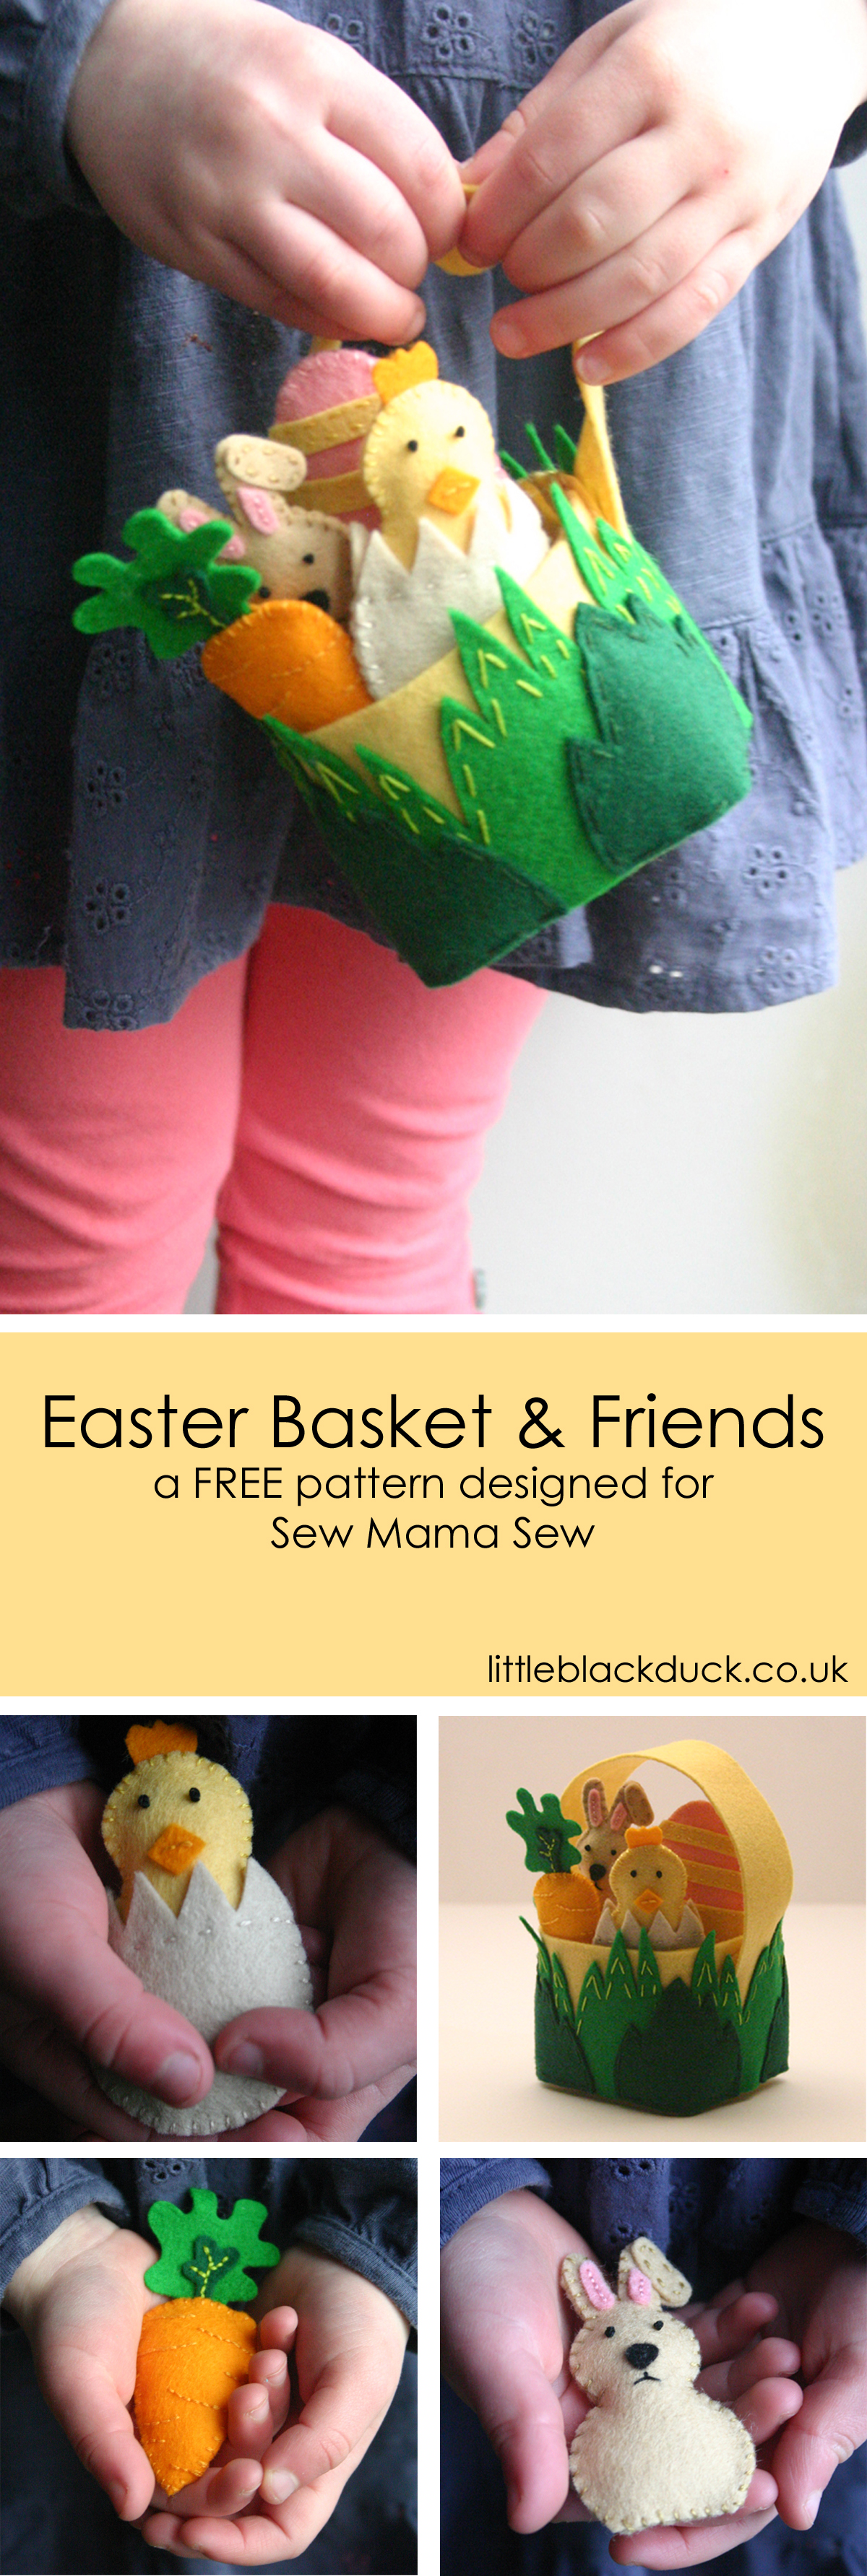 Easter Basket and Friends Free Tutorial